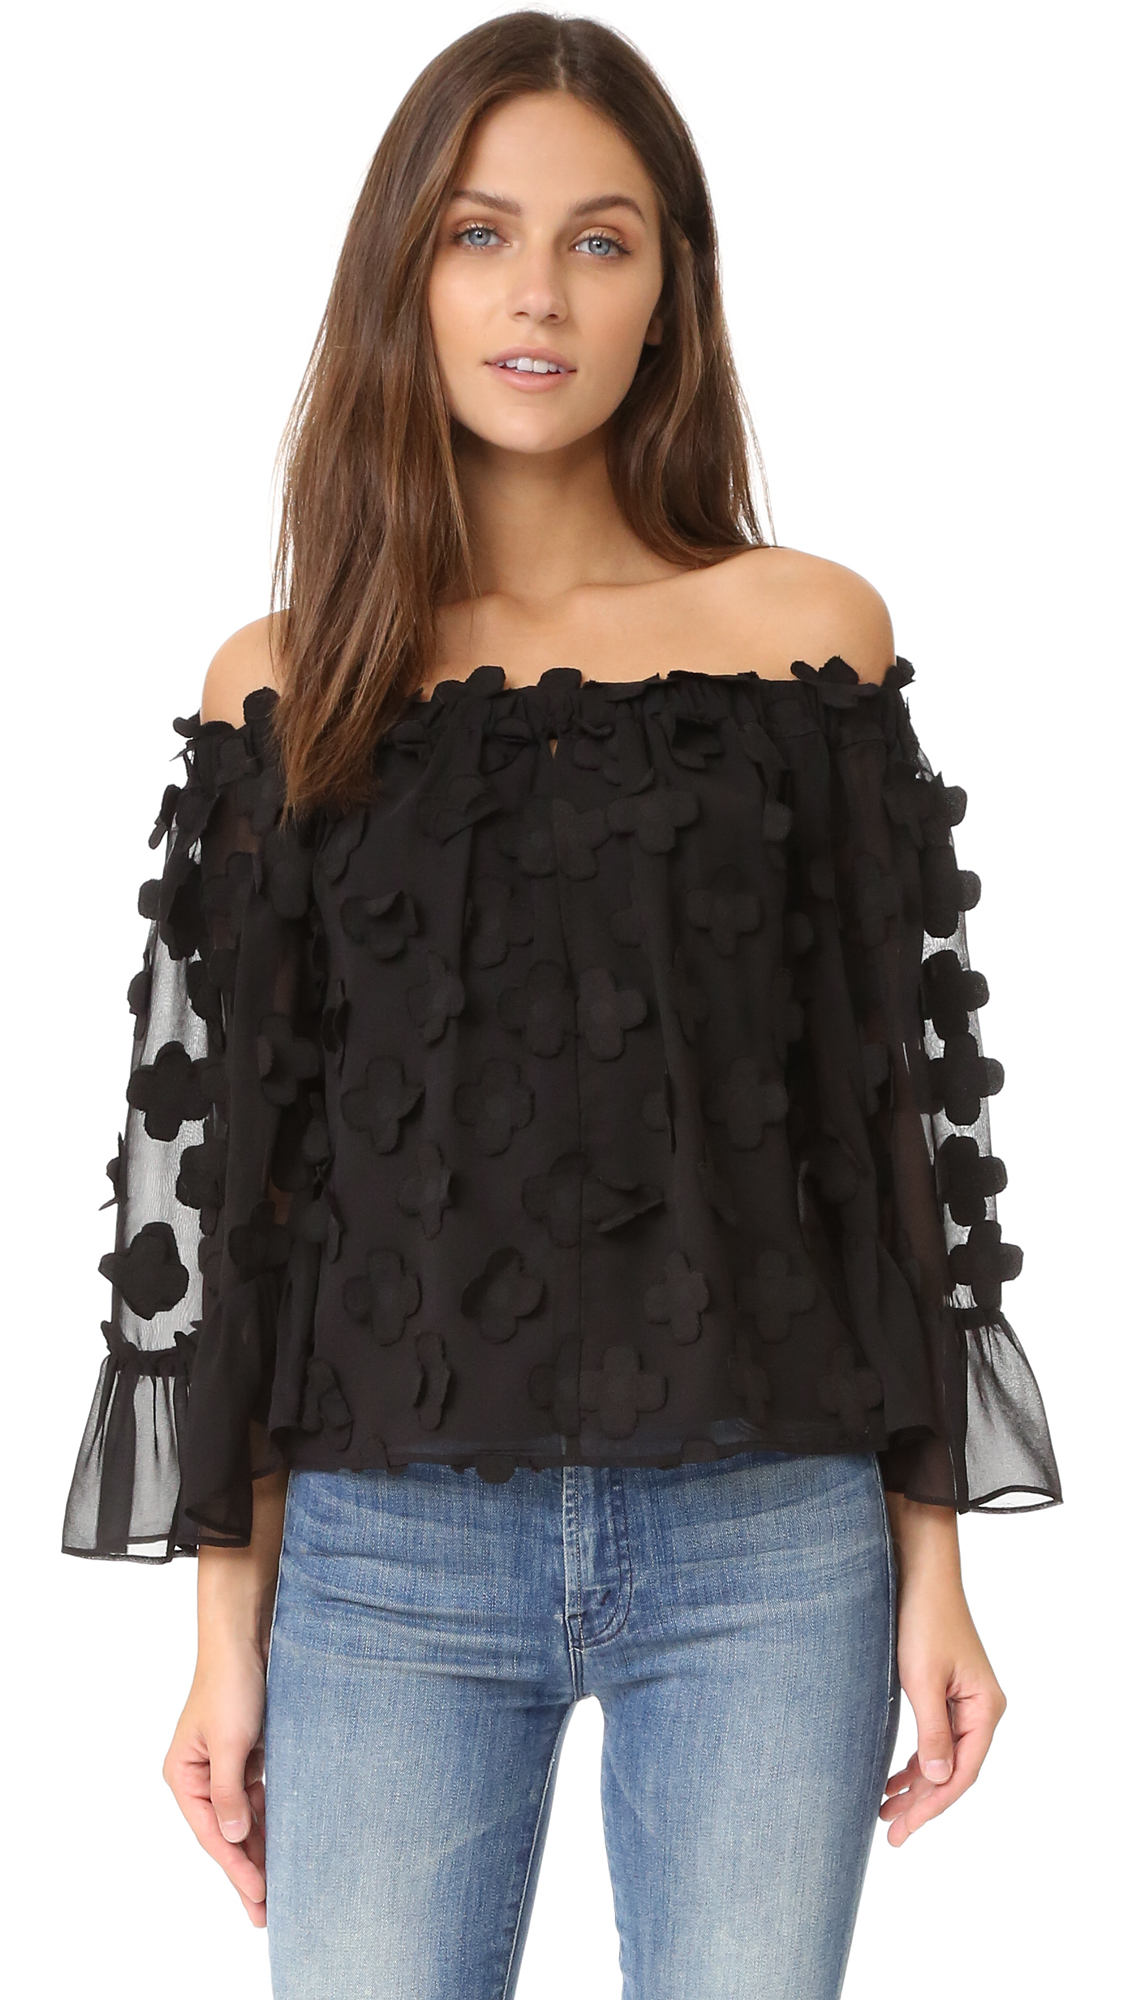 Description NOTE: Sizes listed are Australian. Please see Size & Fit tab. Appliqué flowers bring soft, feminine texture to this off shoulder Alice McCall top. Covered elastic top hem. Bell sleeves. Lined. Fabric: Chiffon. 100% polyester. Hand wash.